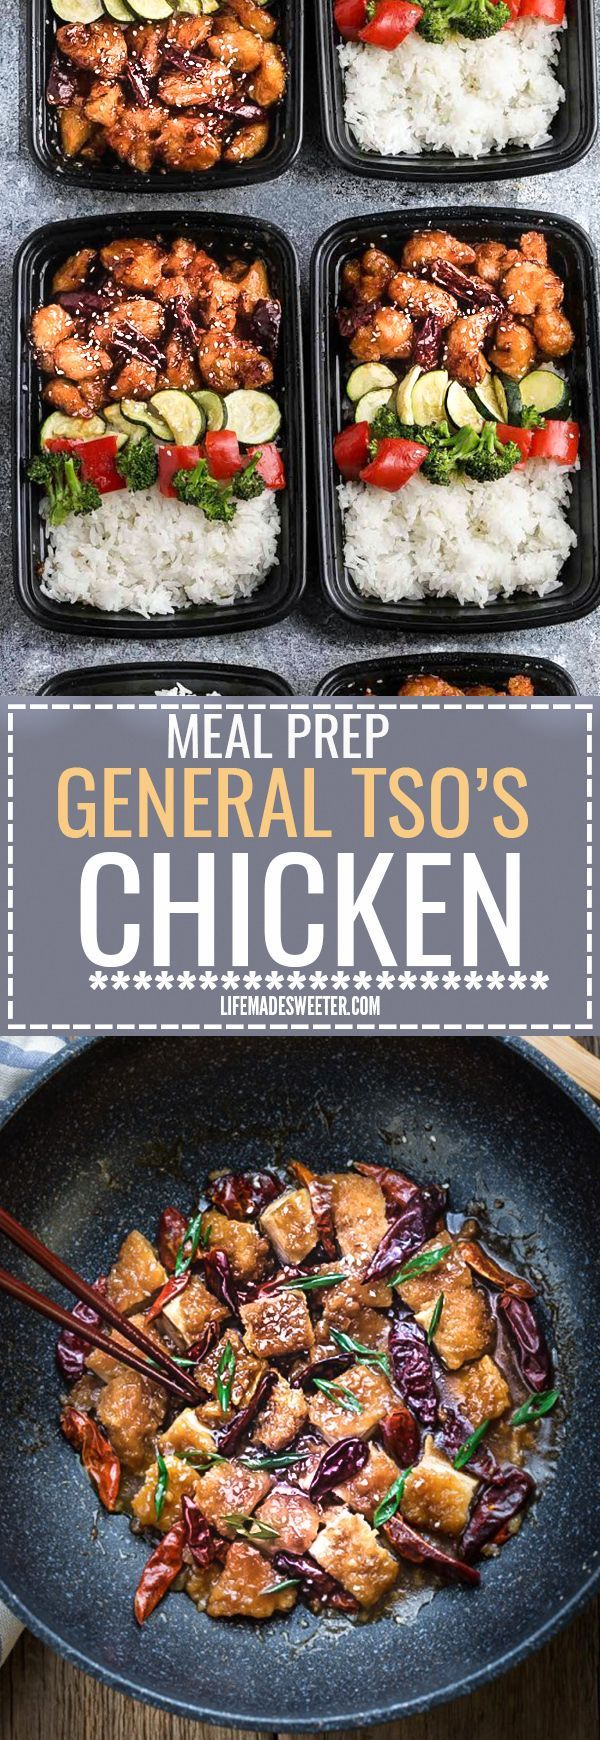 General Tso's Chicken Meal Prep Bowls makes the perfect easy weeknight dish full of authentic flavors. Best of all, so easy to make and way better than your favorite Chinese takeout restaurant. Great for meal prep Sunday and leftovers can be used for work or school lunch bowls!